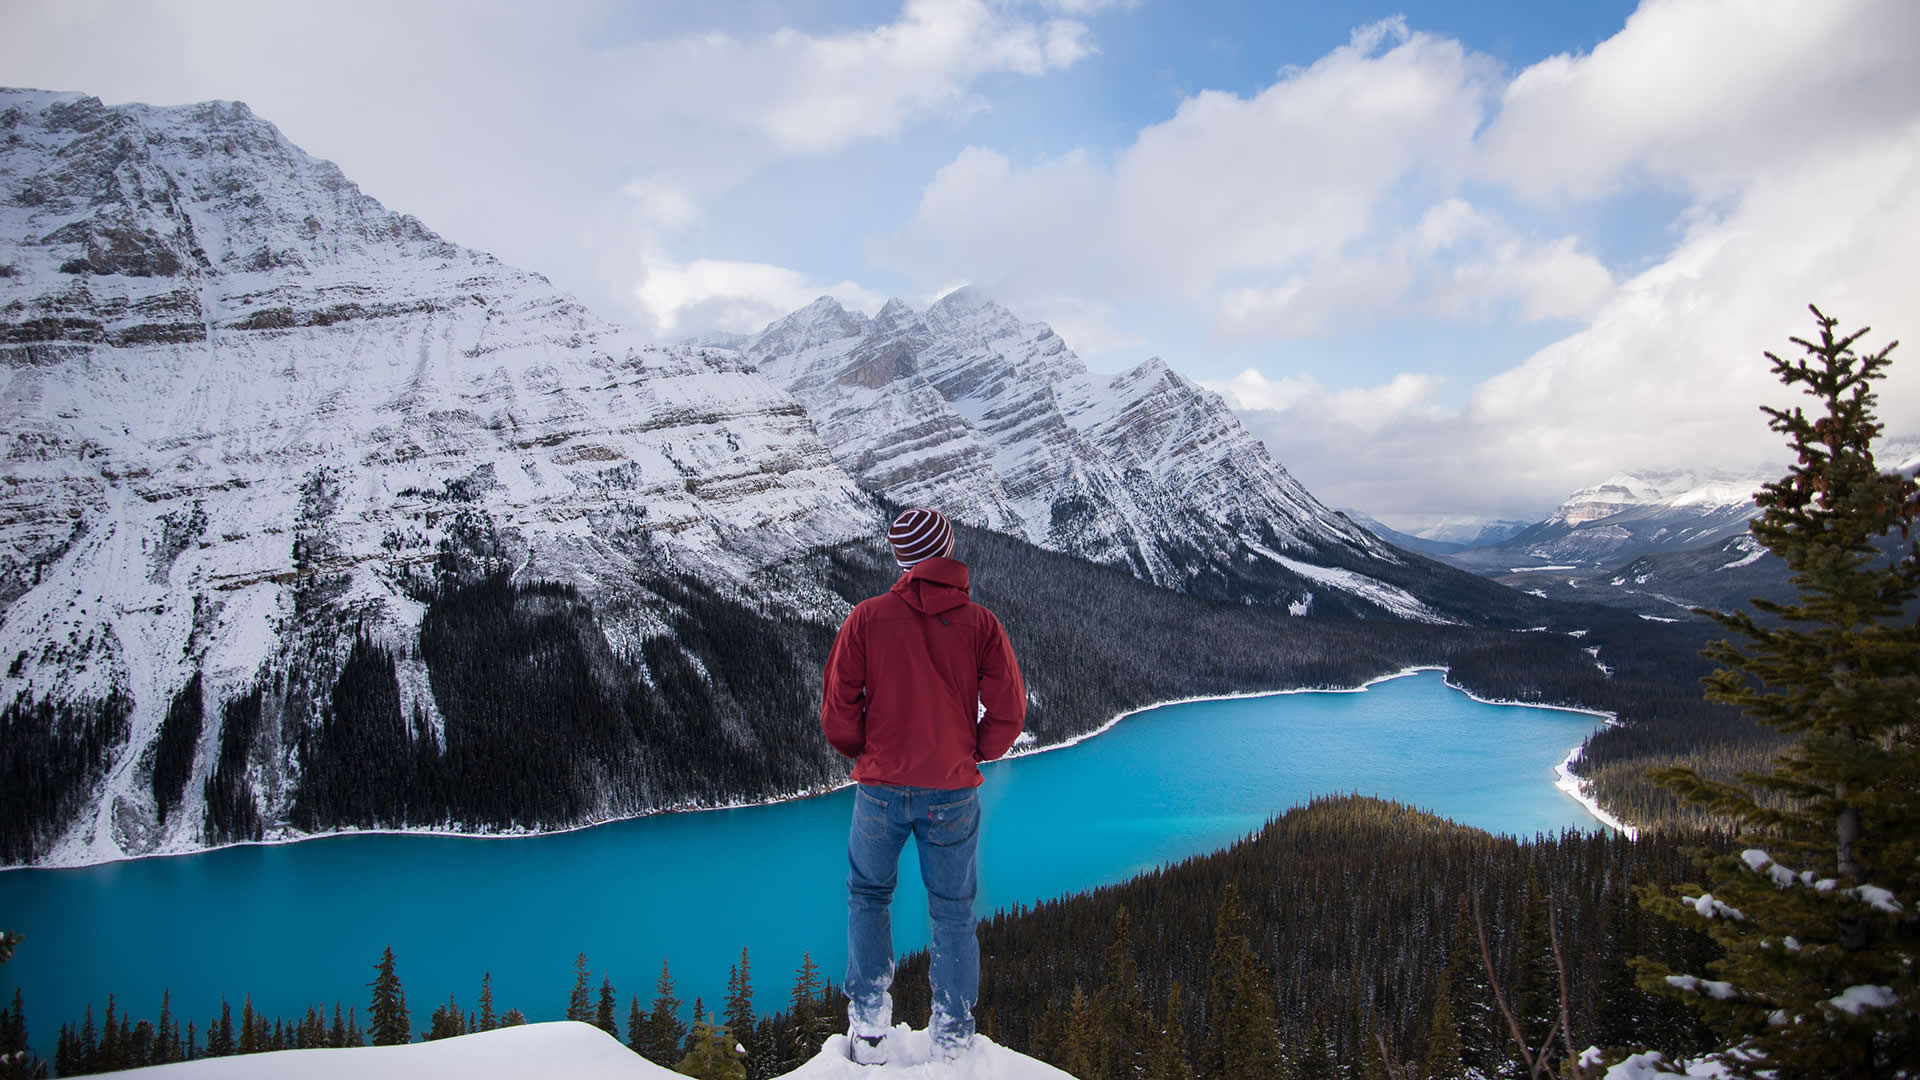 A man stands with the world at his feet, surrounded by snowy mountains and a sparkling blue lake